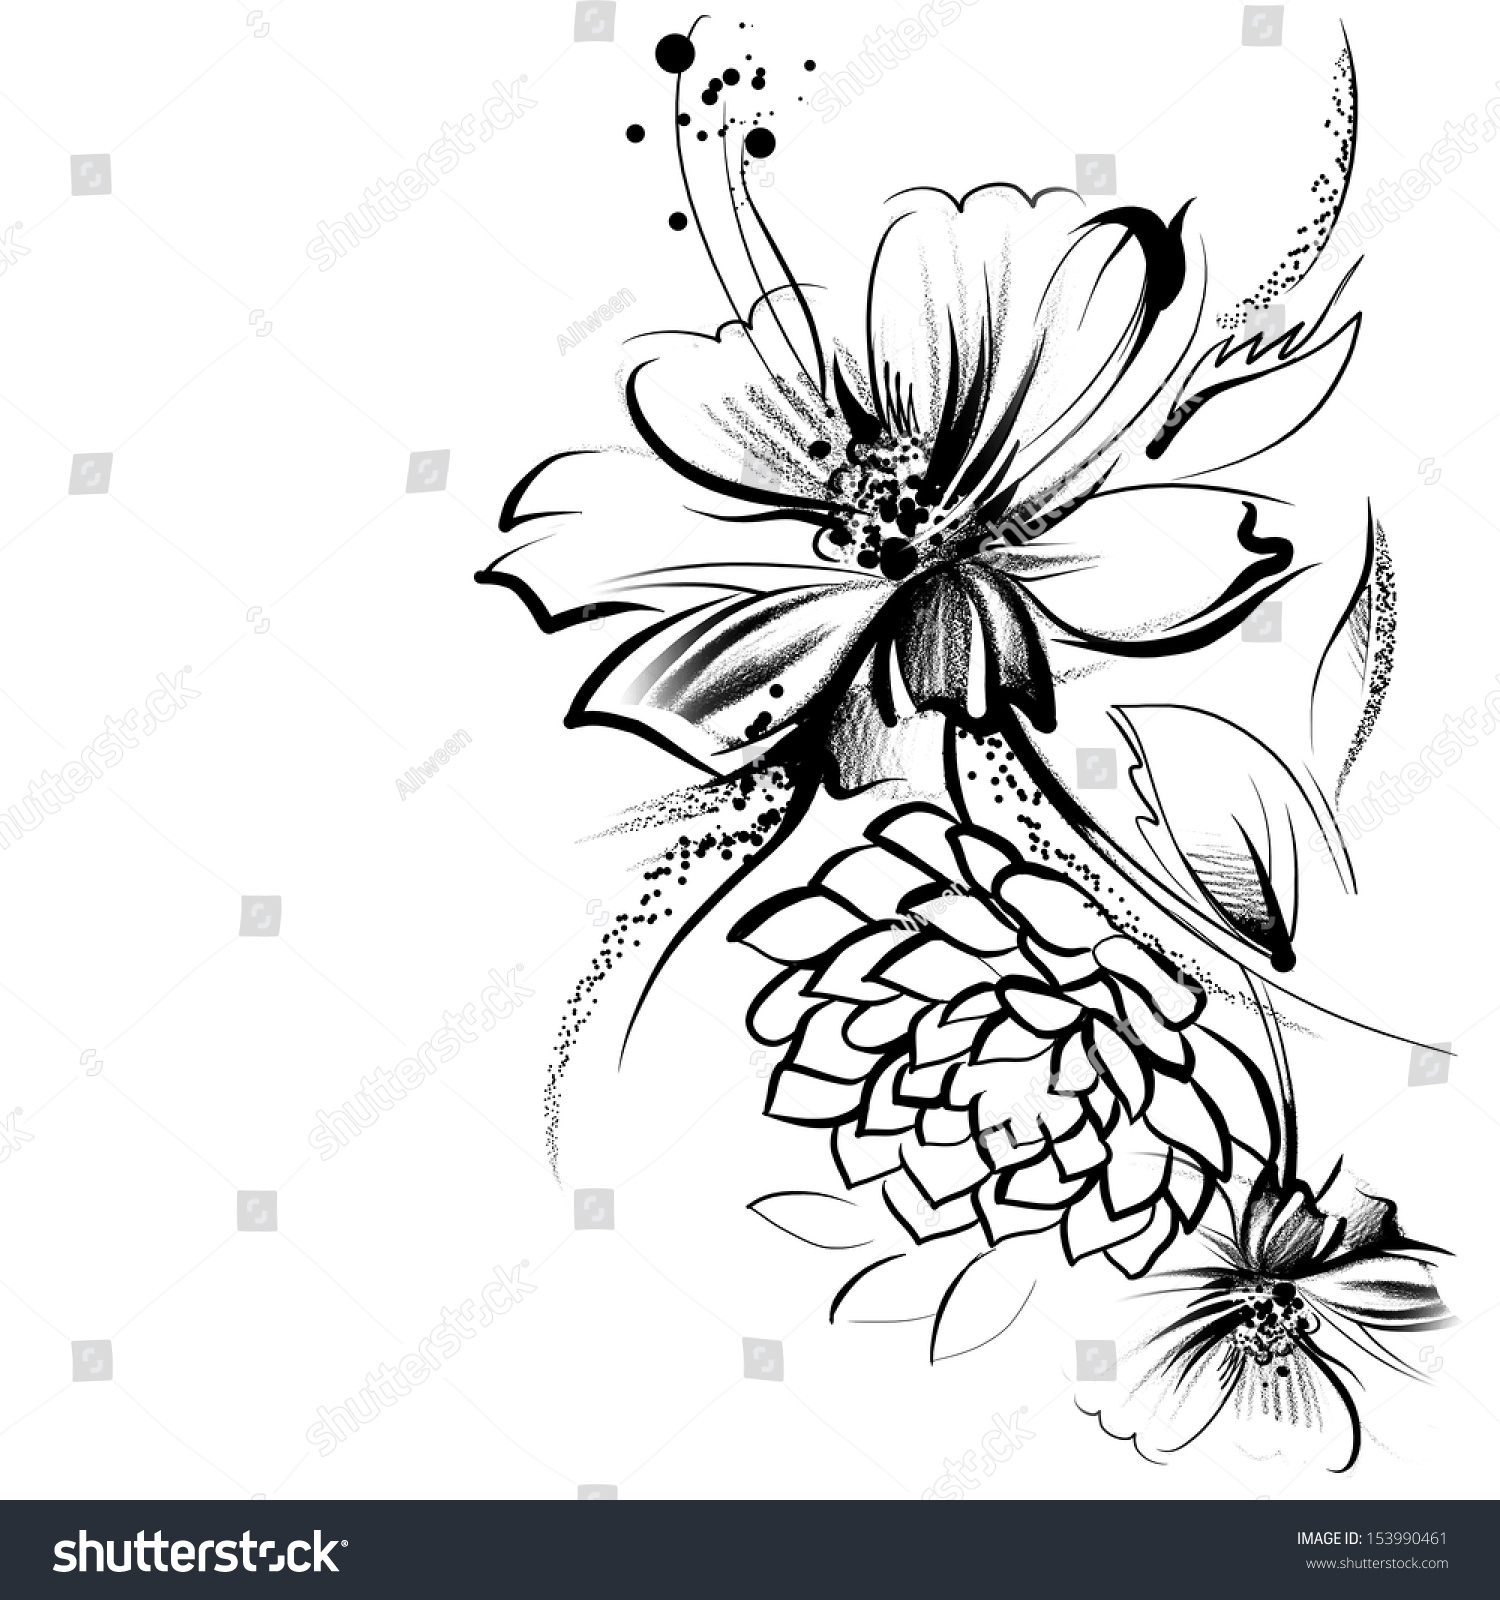 Abstract Line Drawing Flowers : Flowers drawn ink on old paper stock illustration